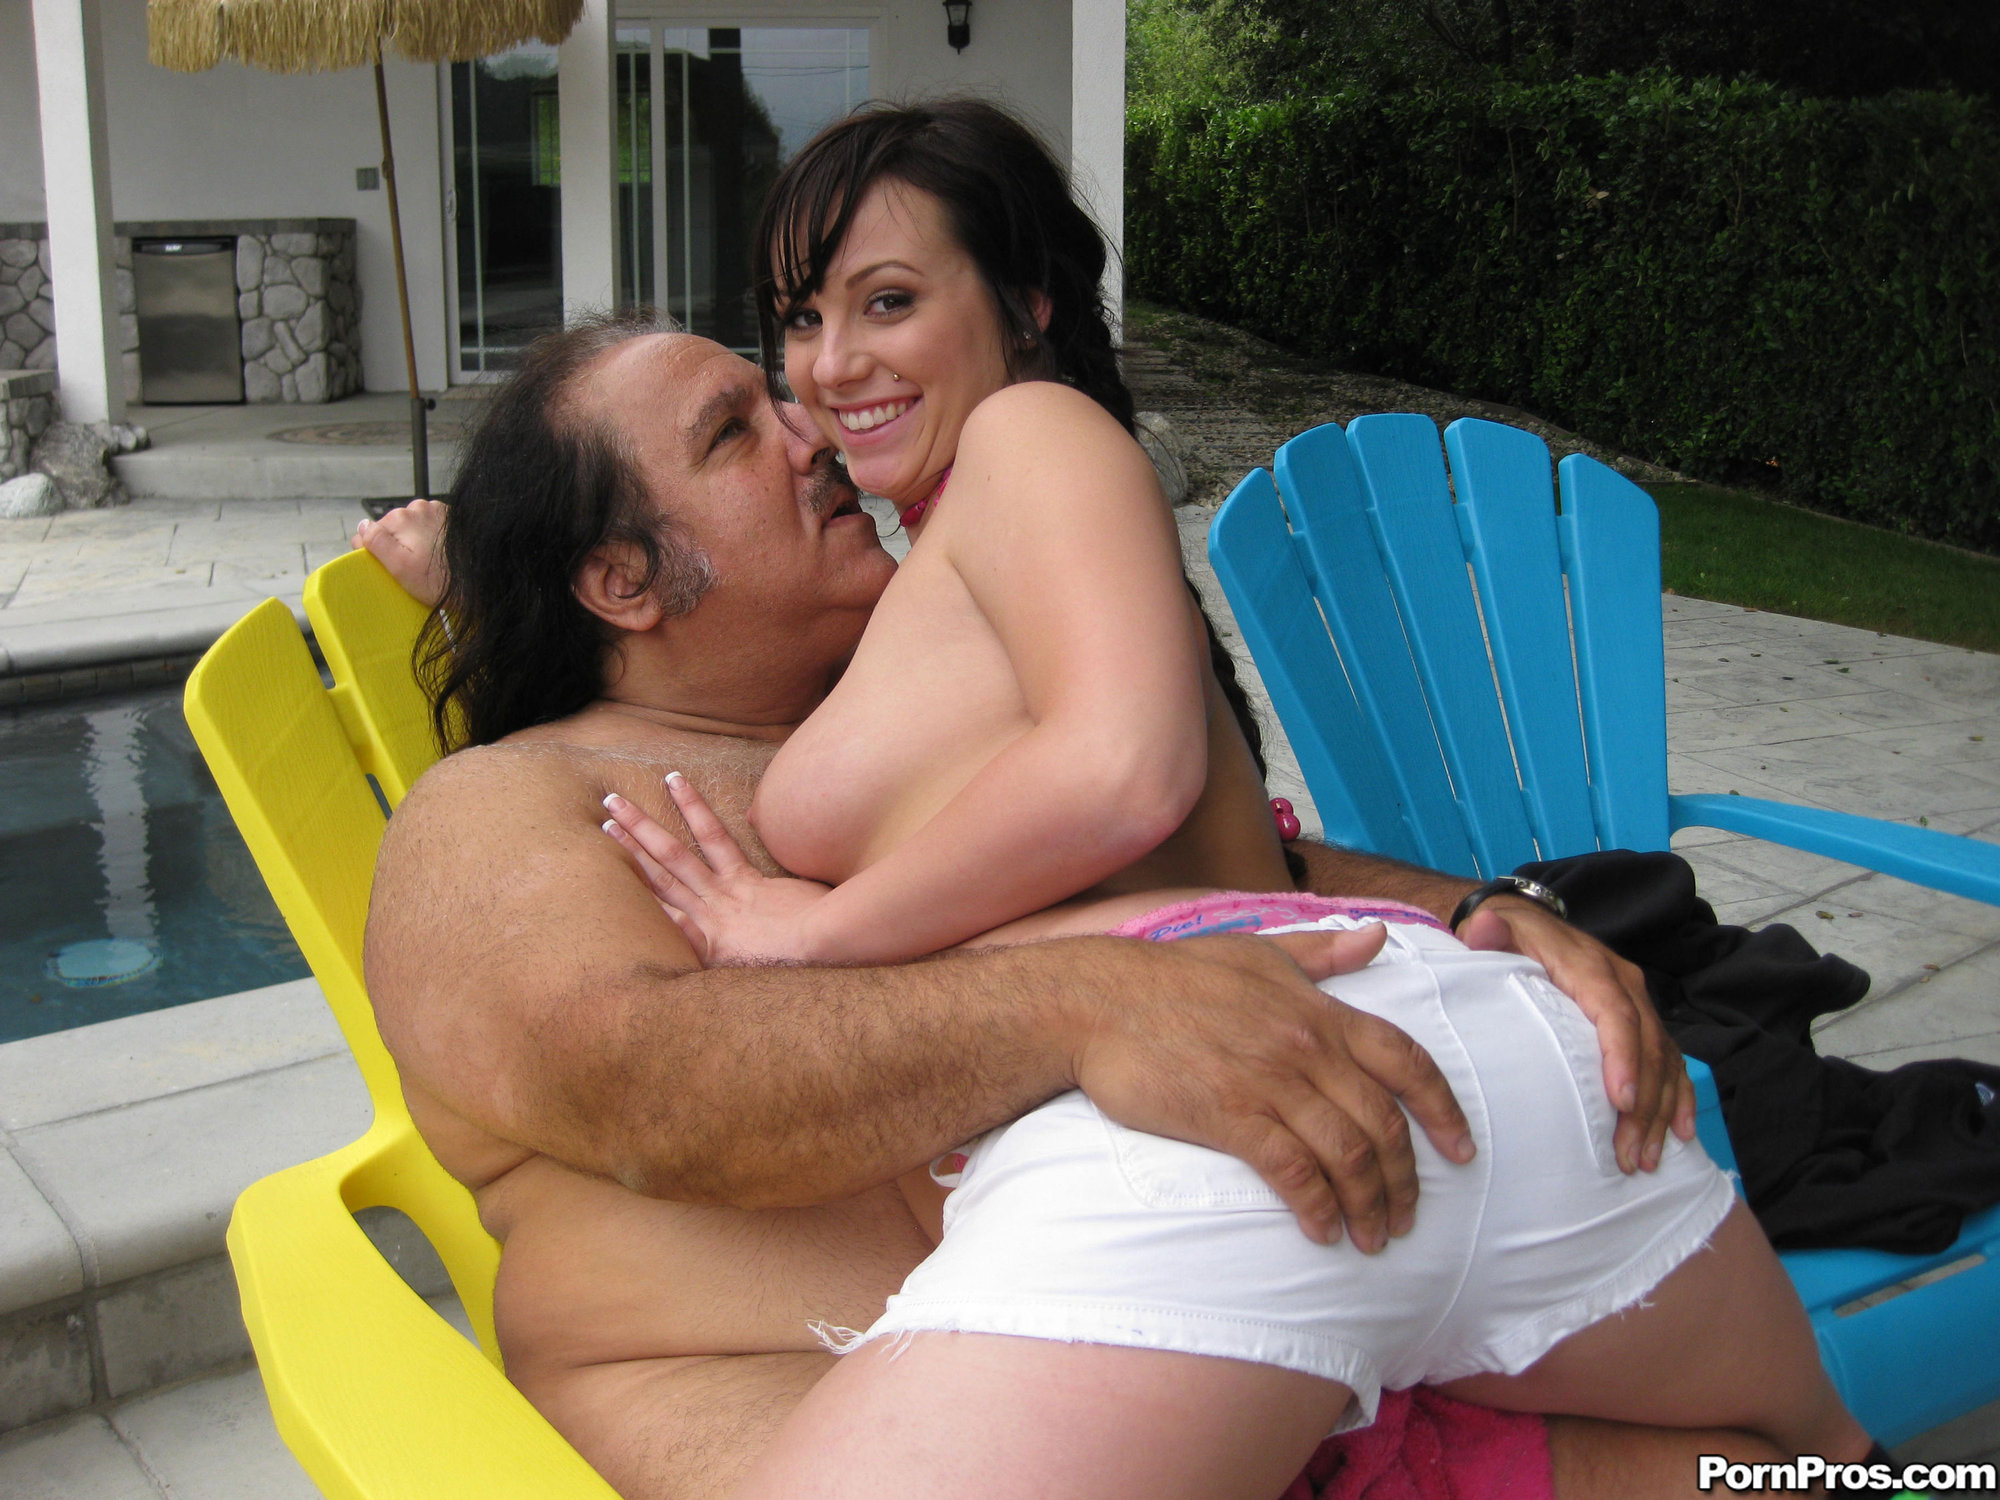 mercedez-oiled-how-big-is-ron-jeremy-s-dick-hand